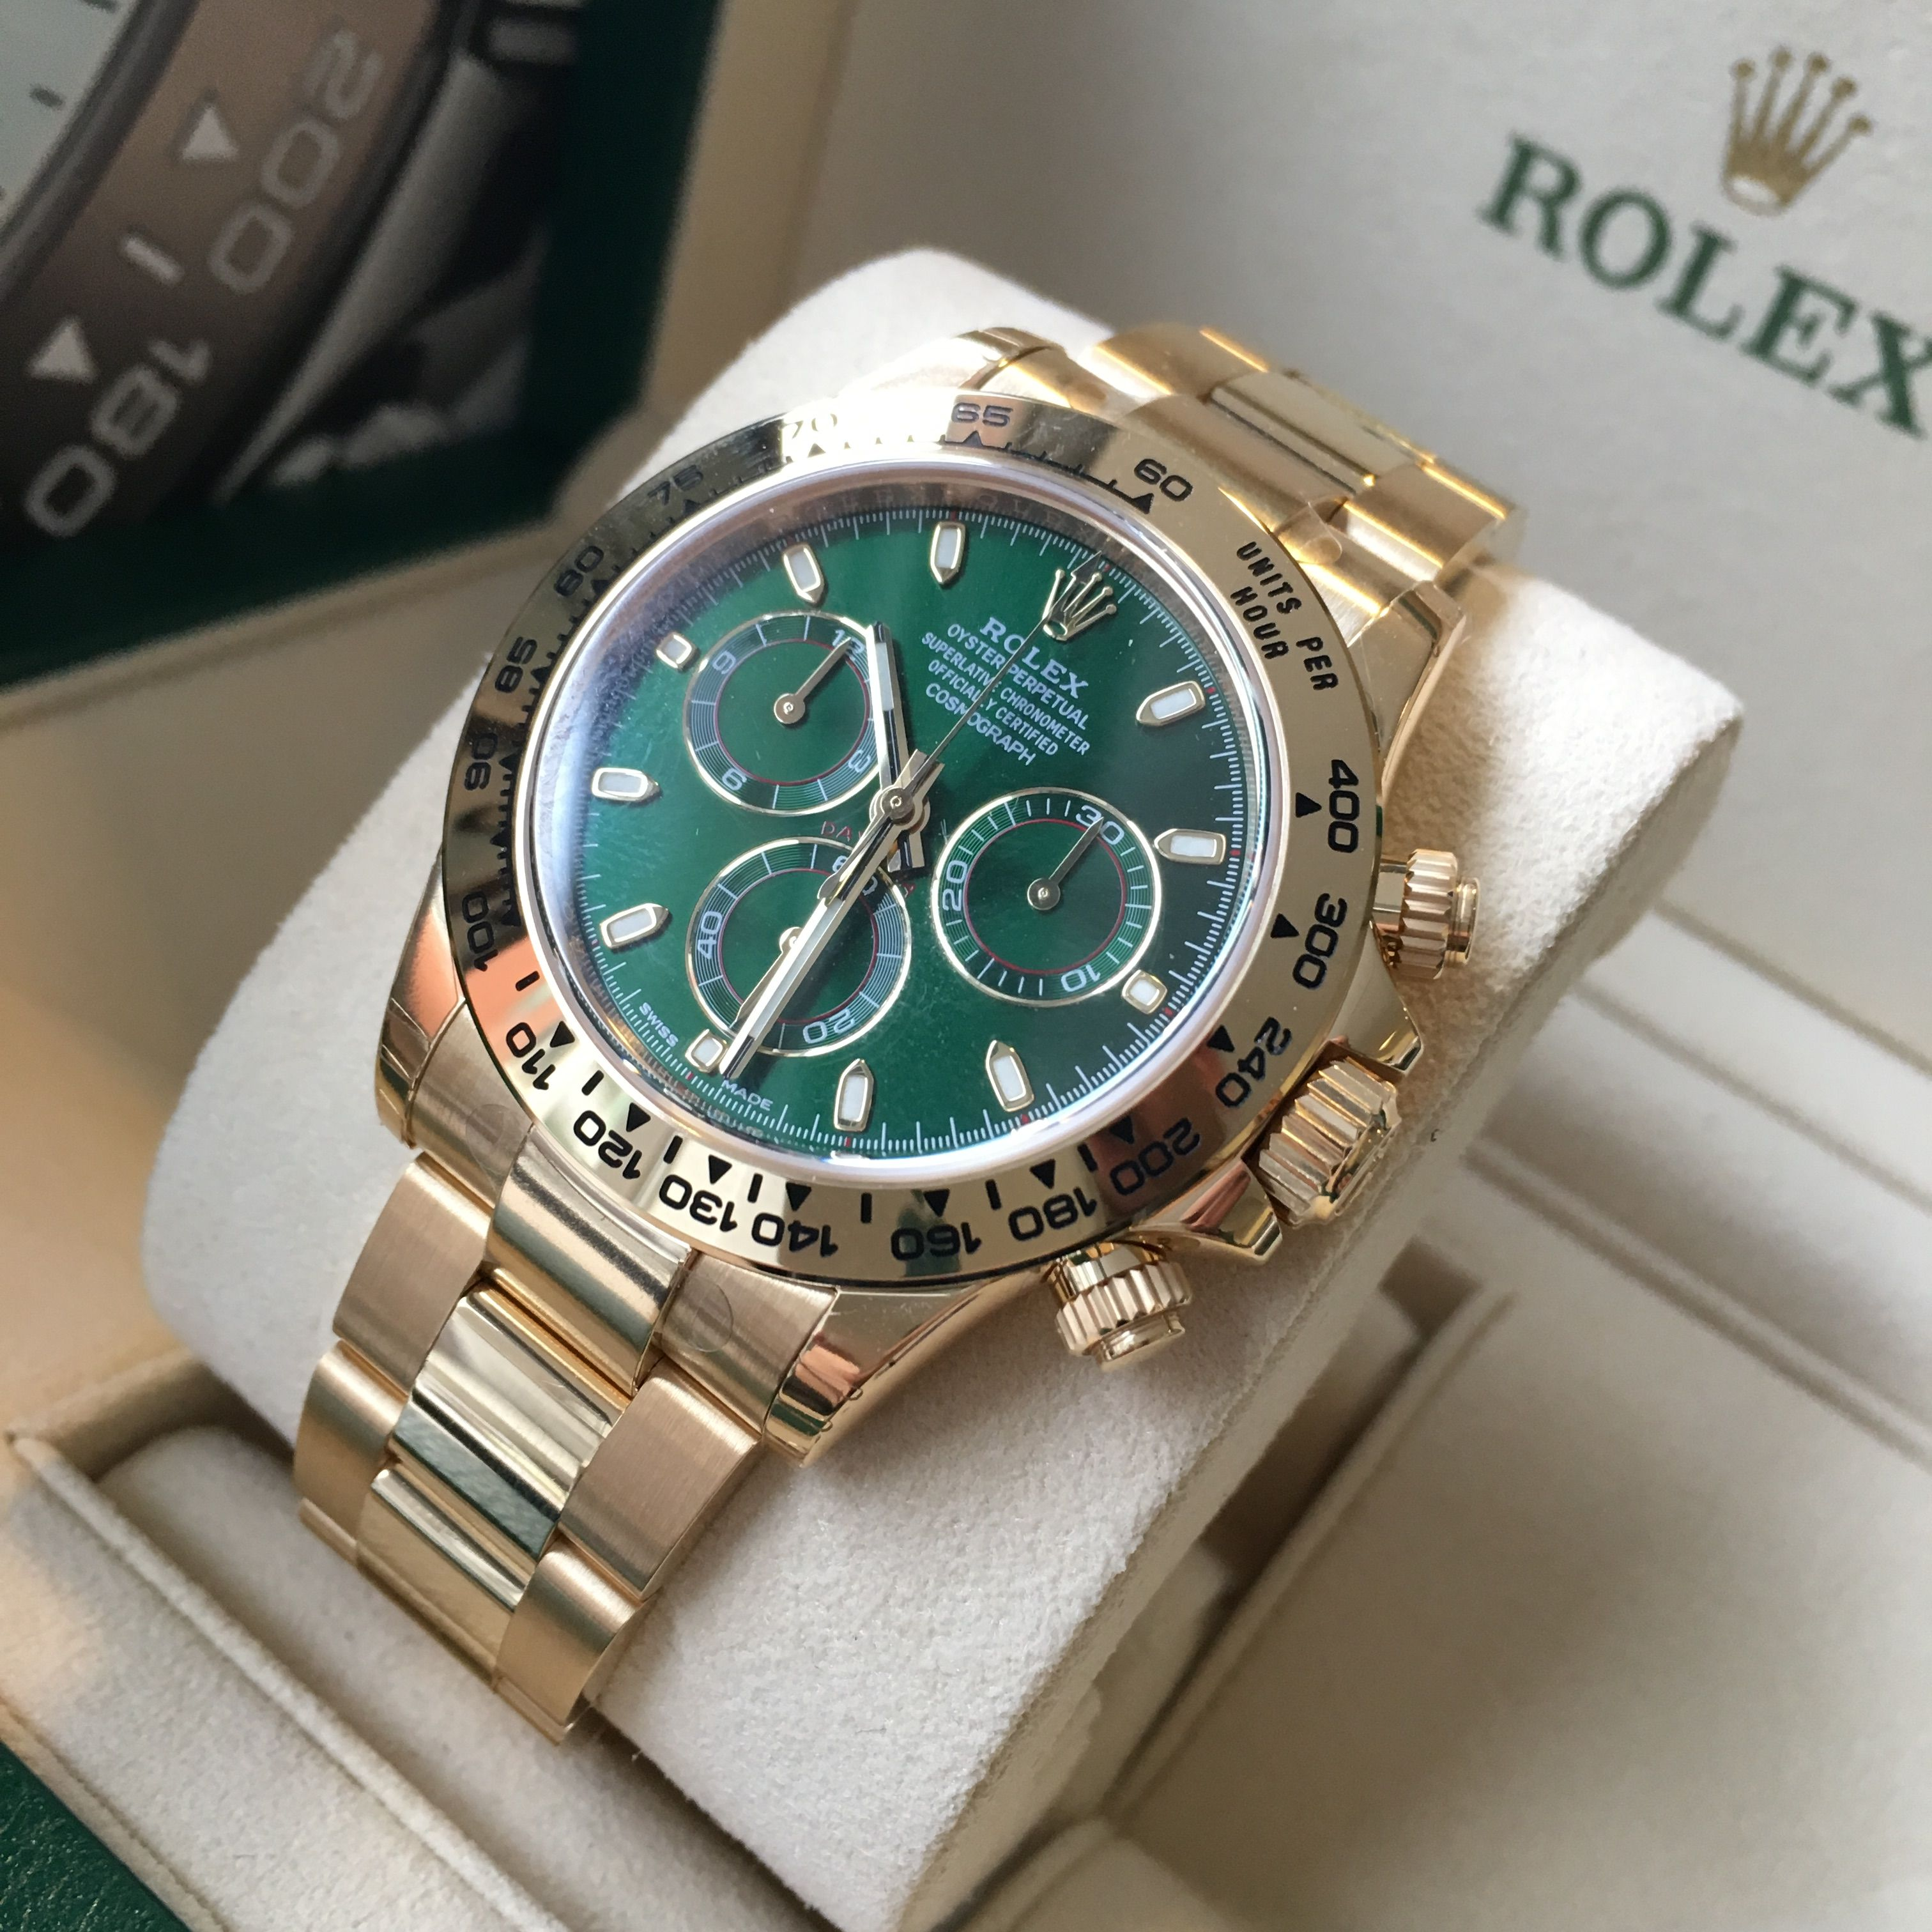 df10d240d93 Special Price for this beauty...so hurry! Rolex Daytona Yellow Gold Green  Dial 116508 Take it home today!